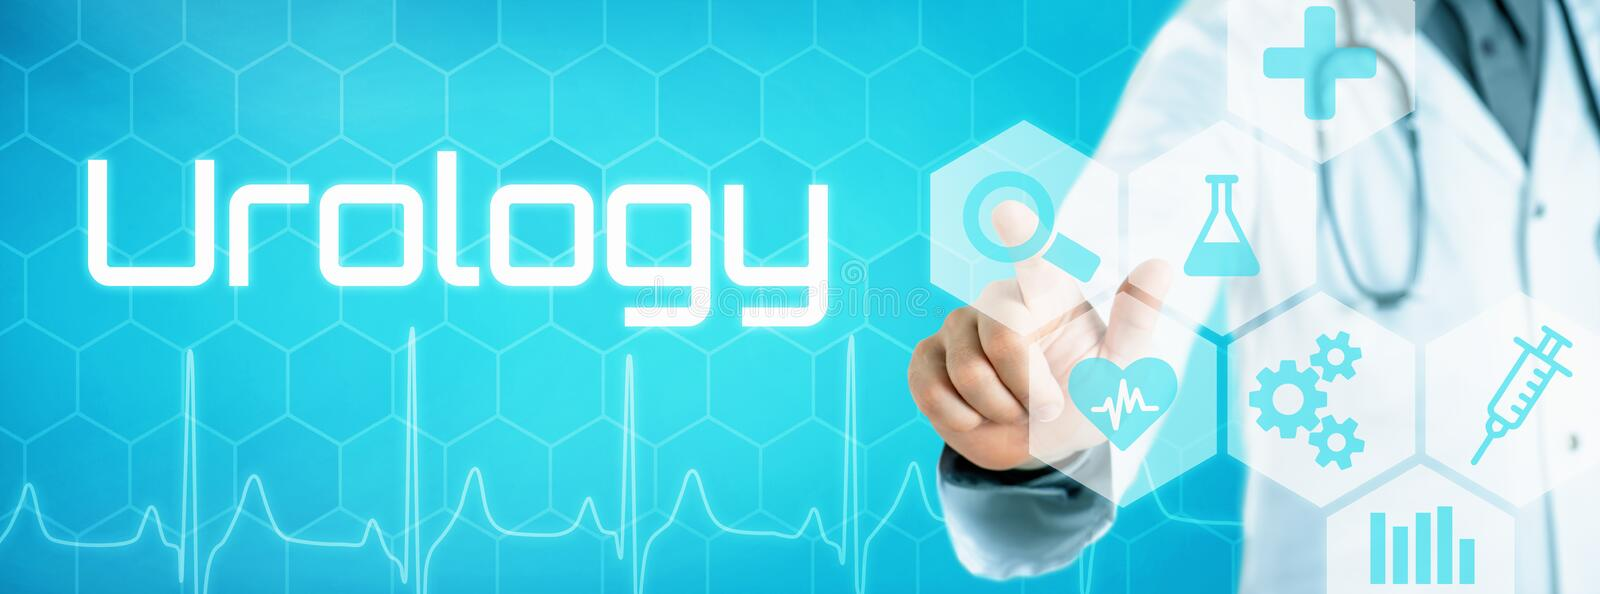 Doctor touching an icon on a futuristic interface - Urology royalty free stock image